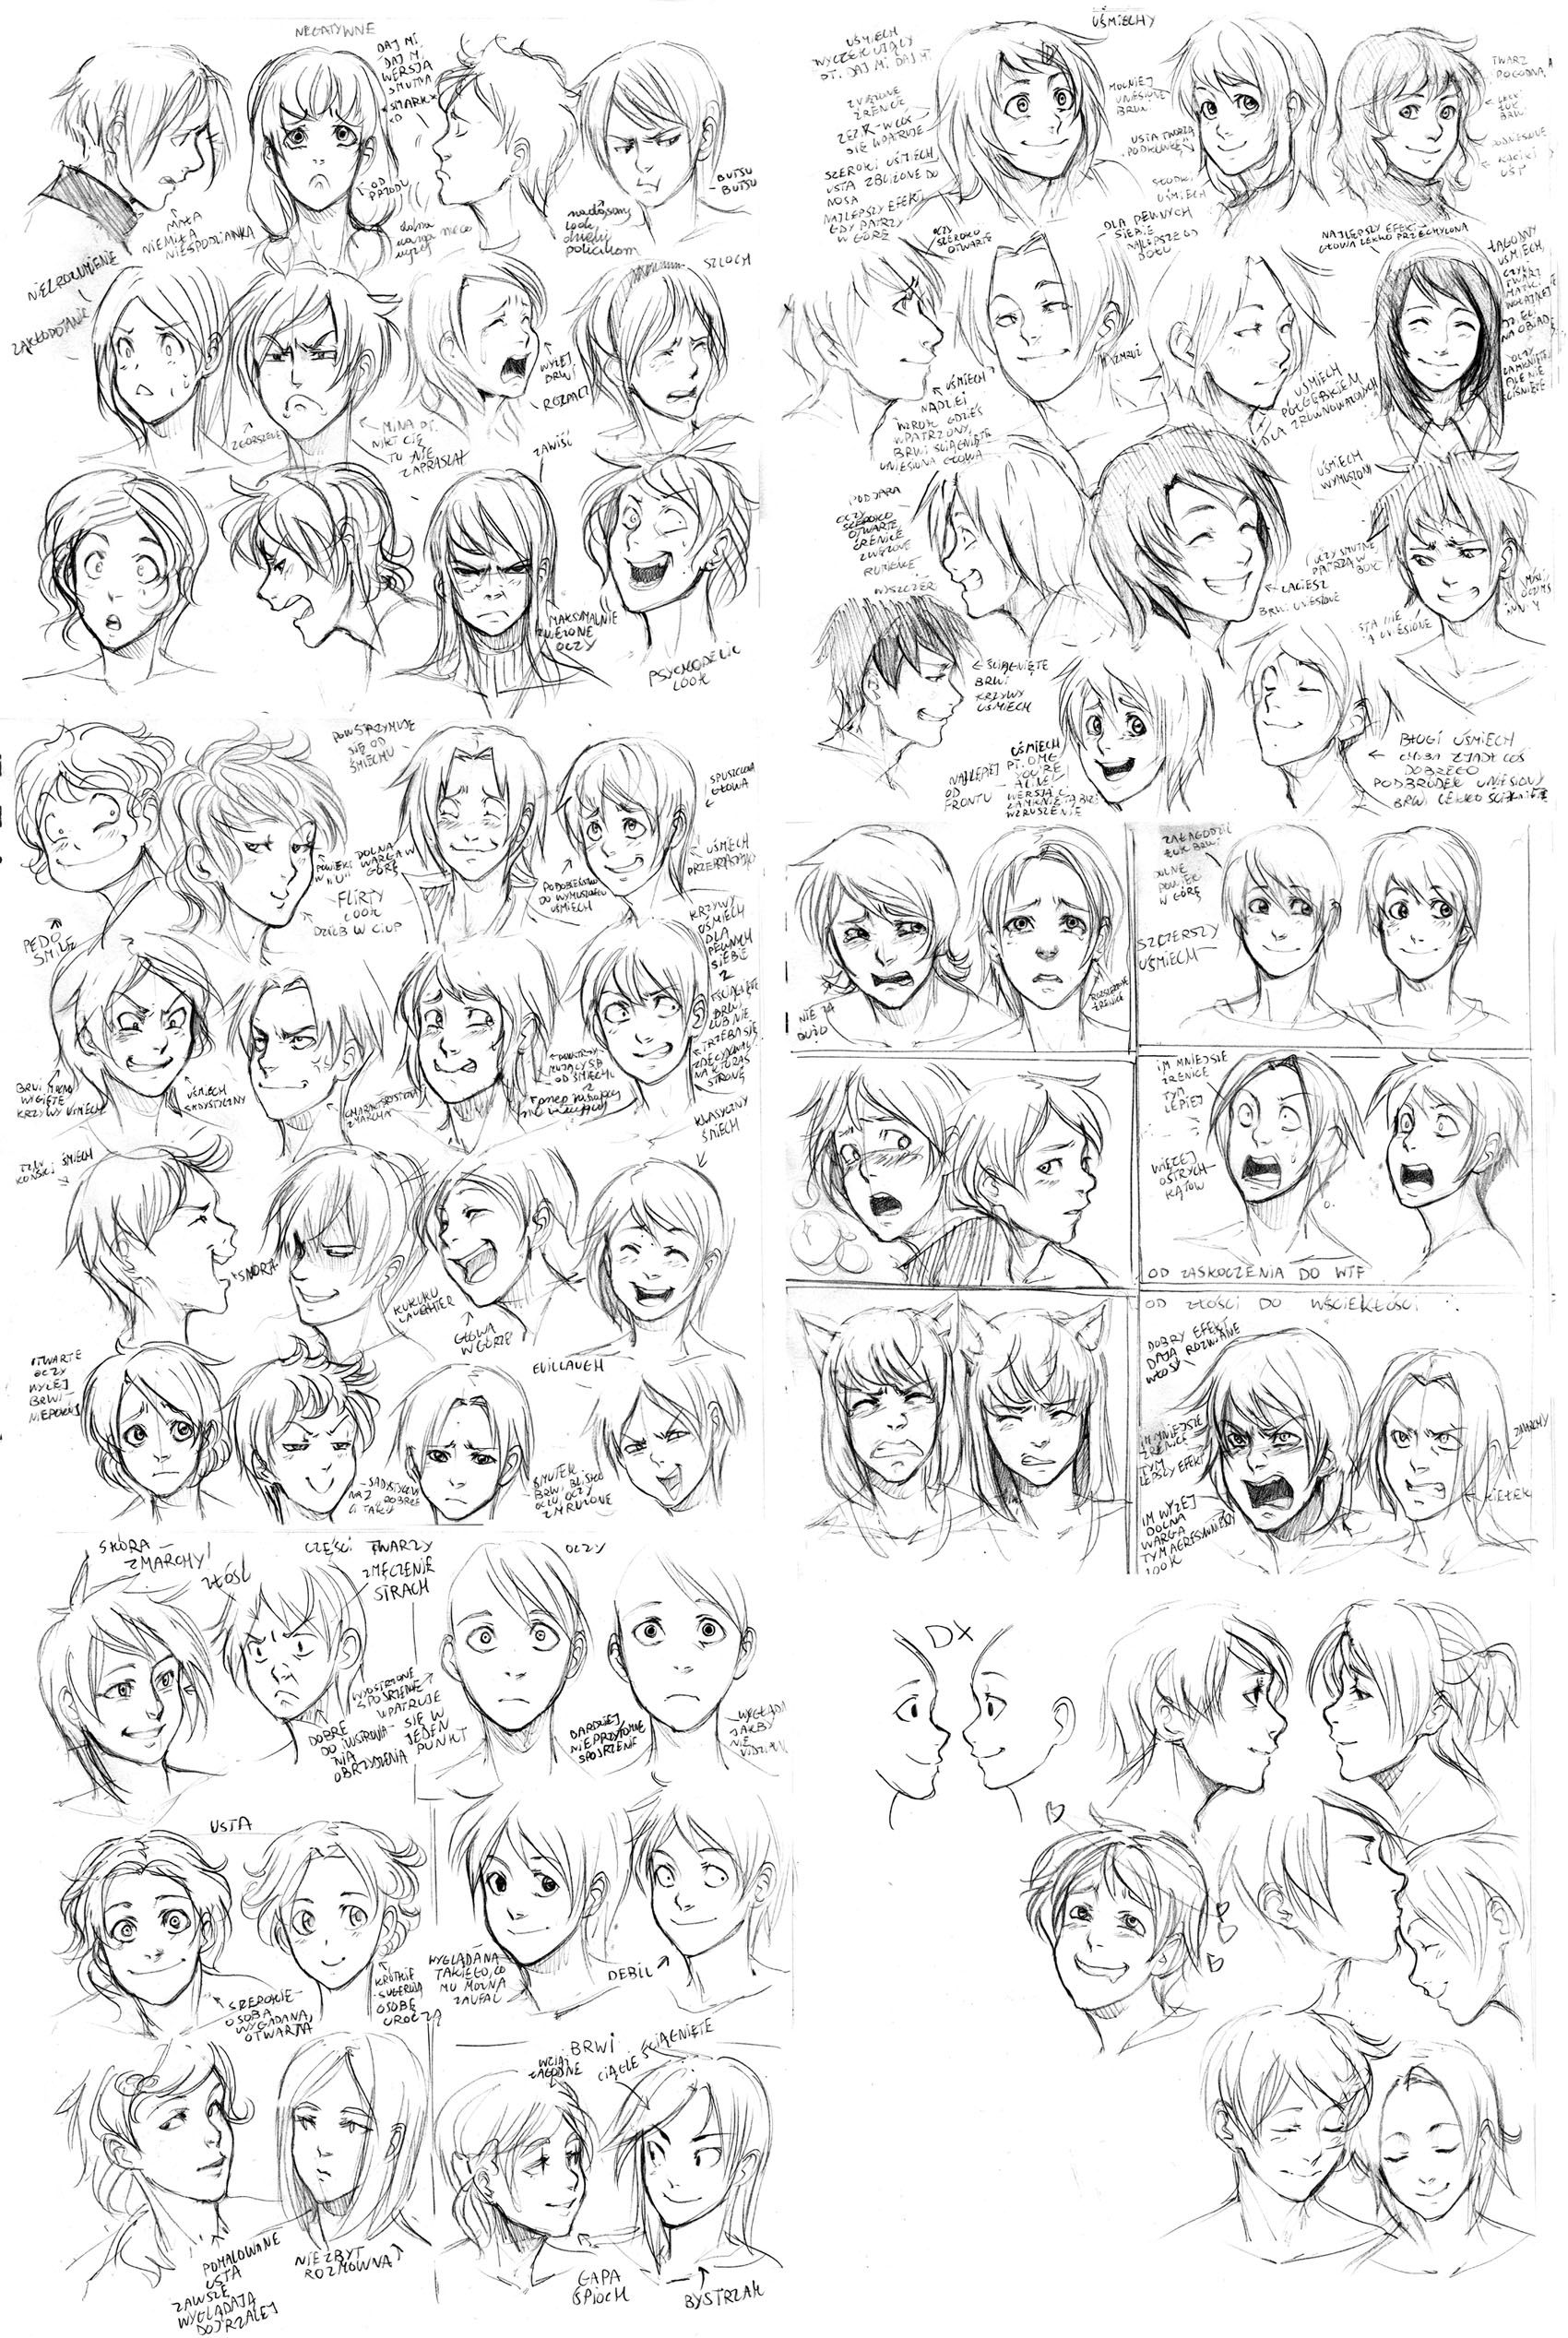 74 expressions male and female heads different hairstyles